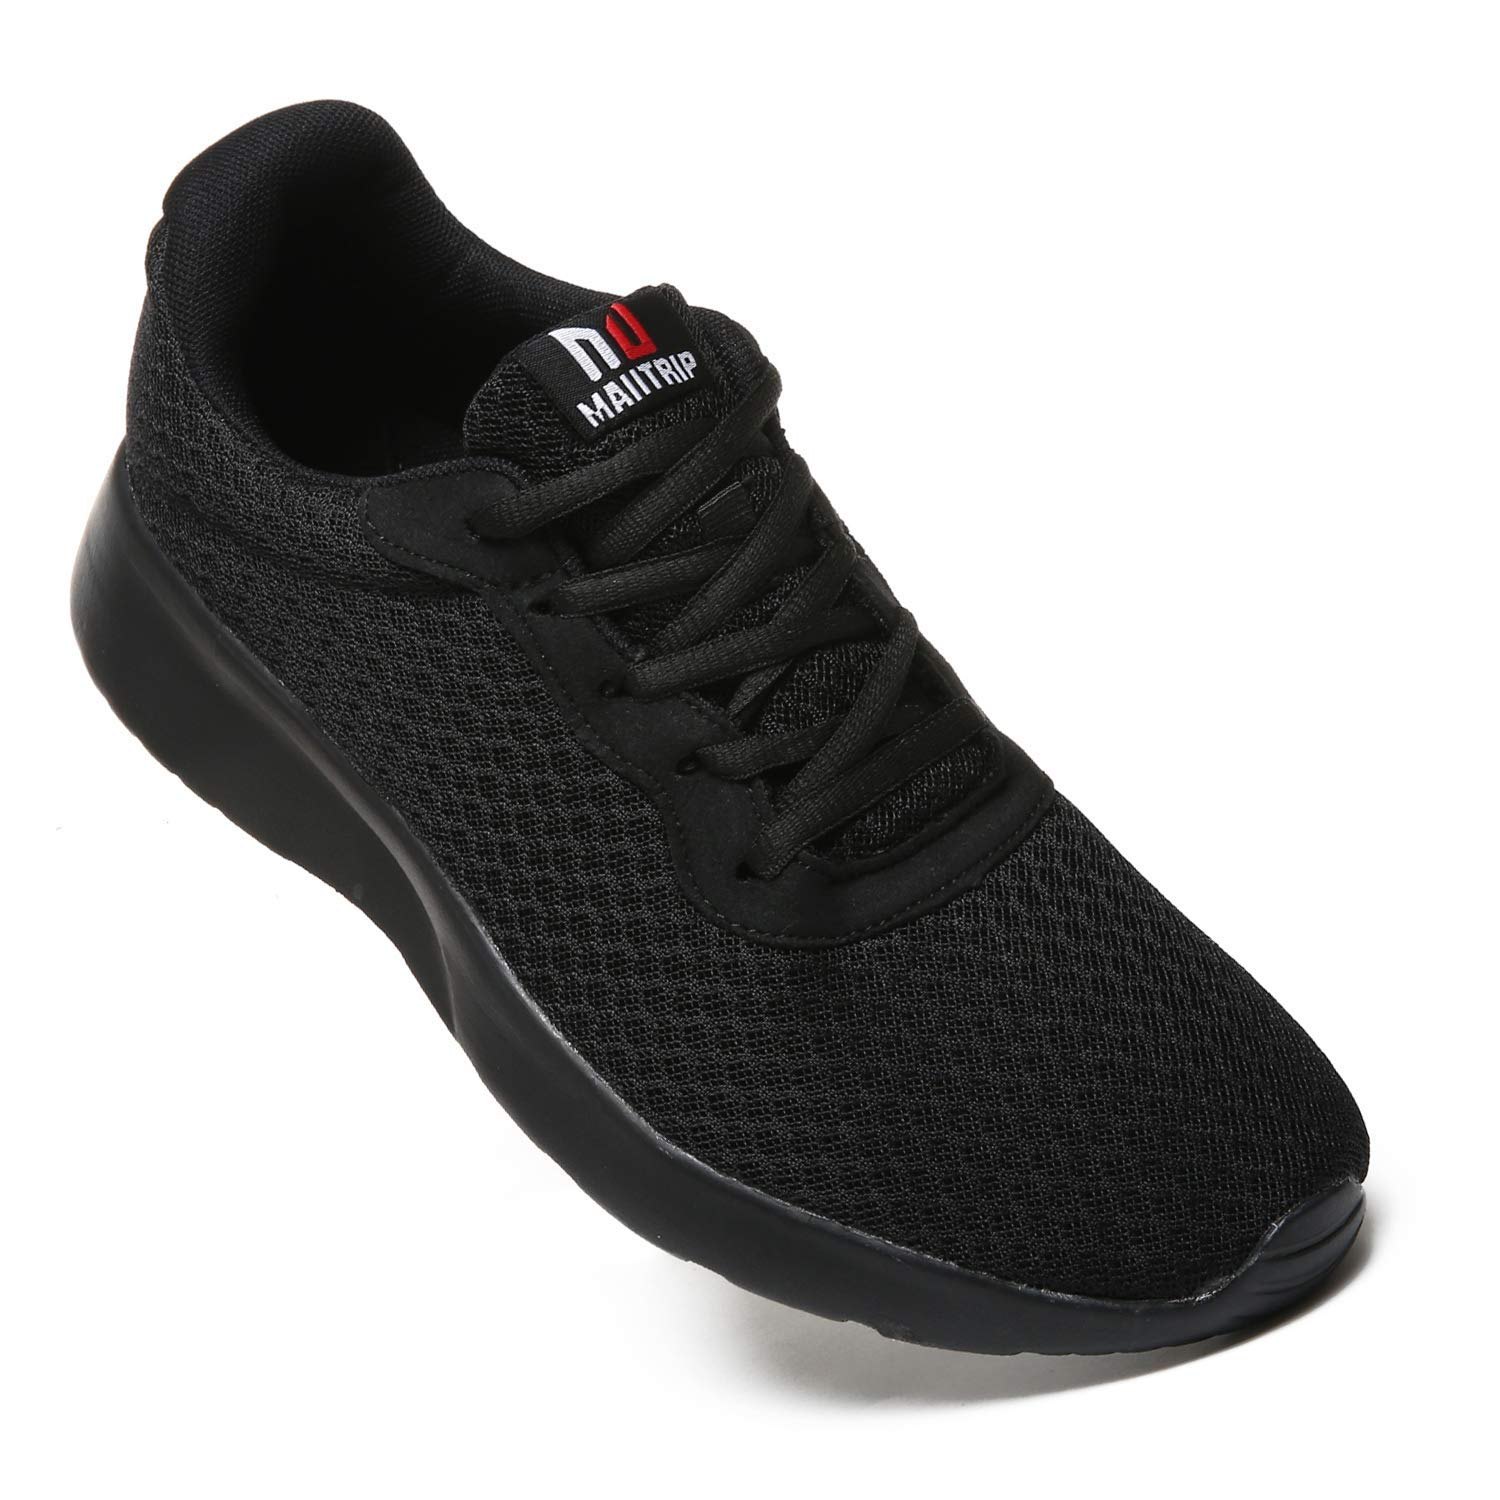 MAITRIP Mens Gym Shoes,Athletic Running Shoes Lightweight Breathable Mesh Casual Tennis Sports Workout Walking Sneakers,All Black,Size 13